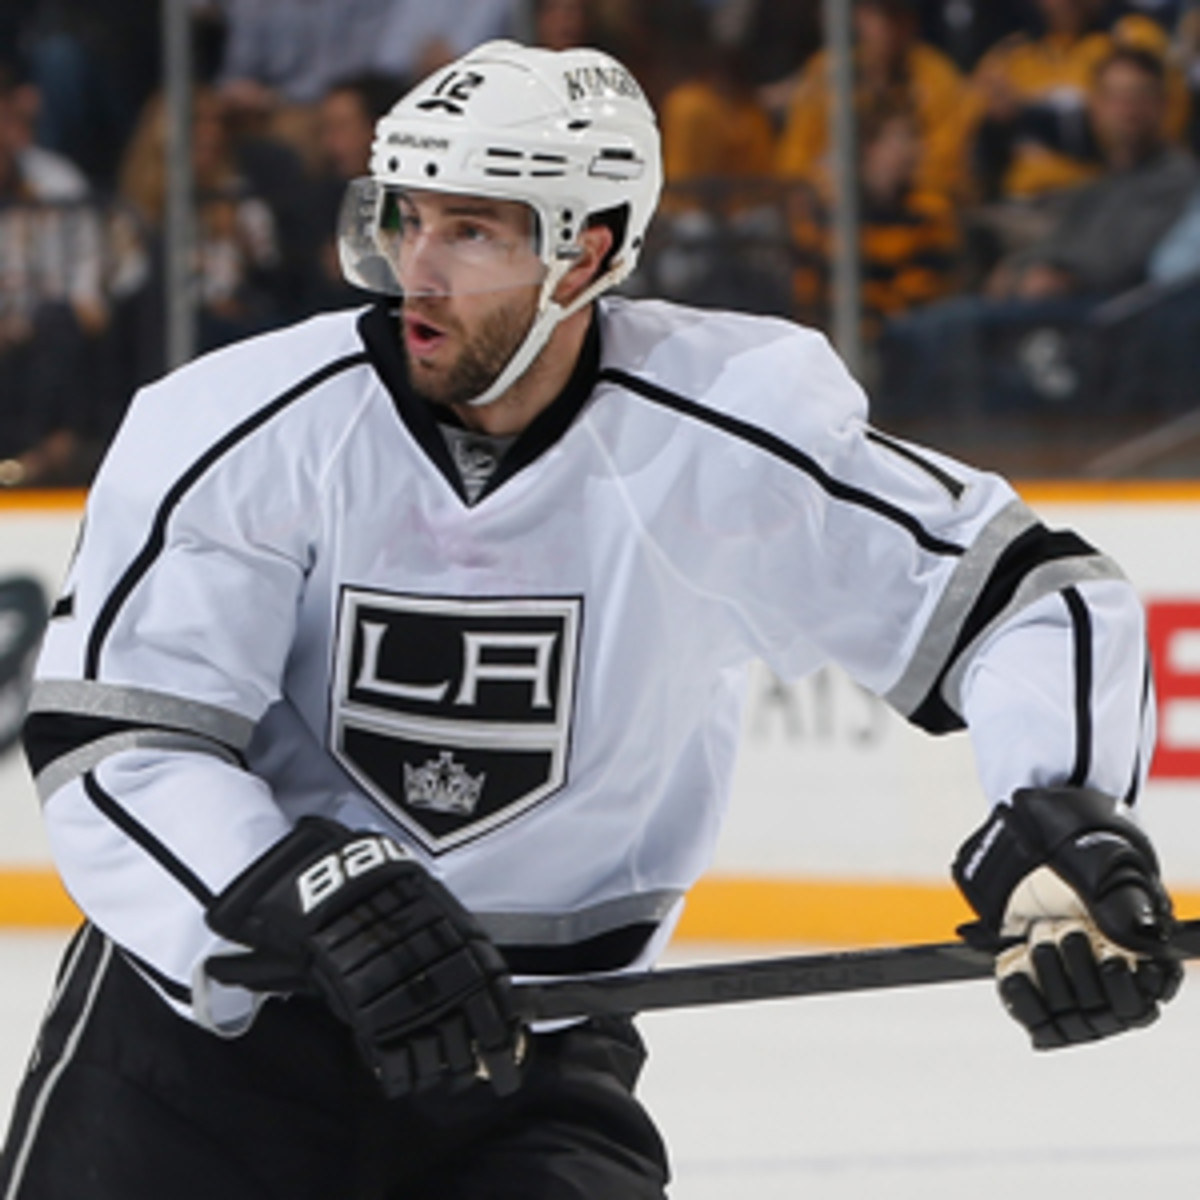 Simon Gagne scored just one goal in 11 games as a King this season. (John Russell/NHL/Getty Images)